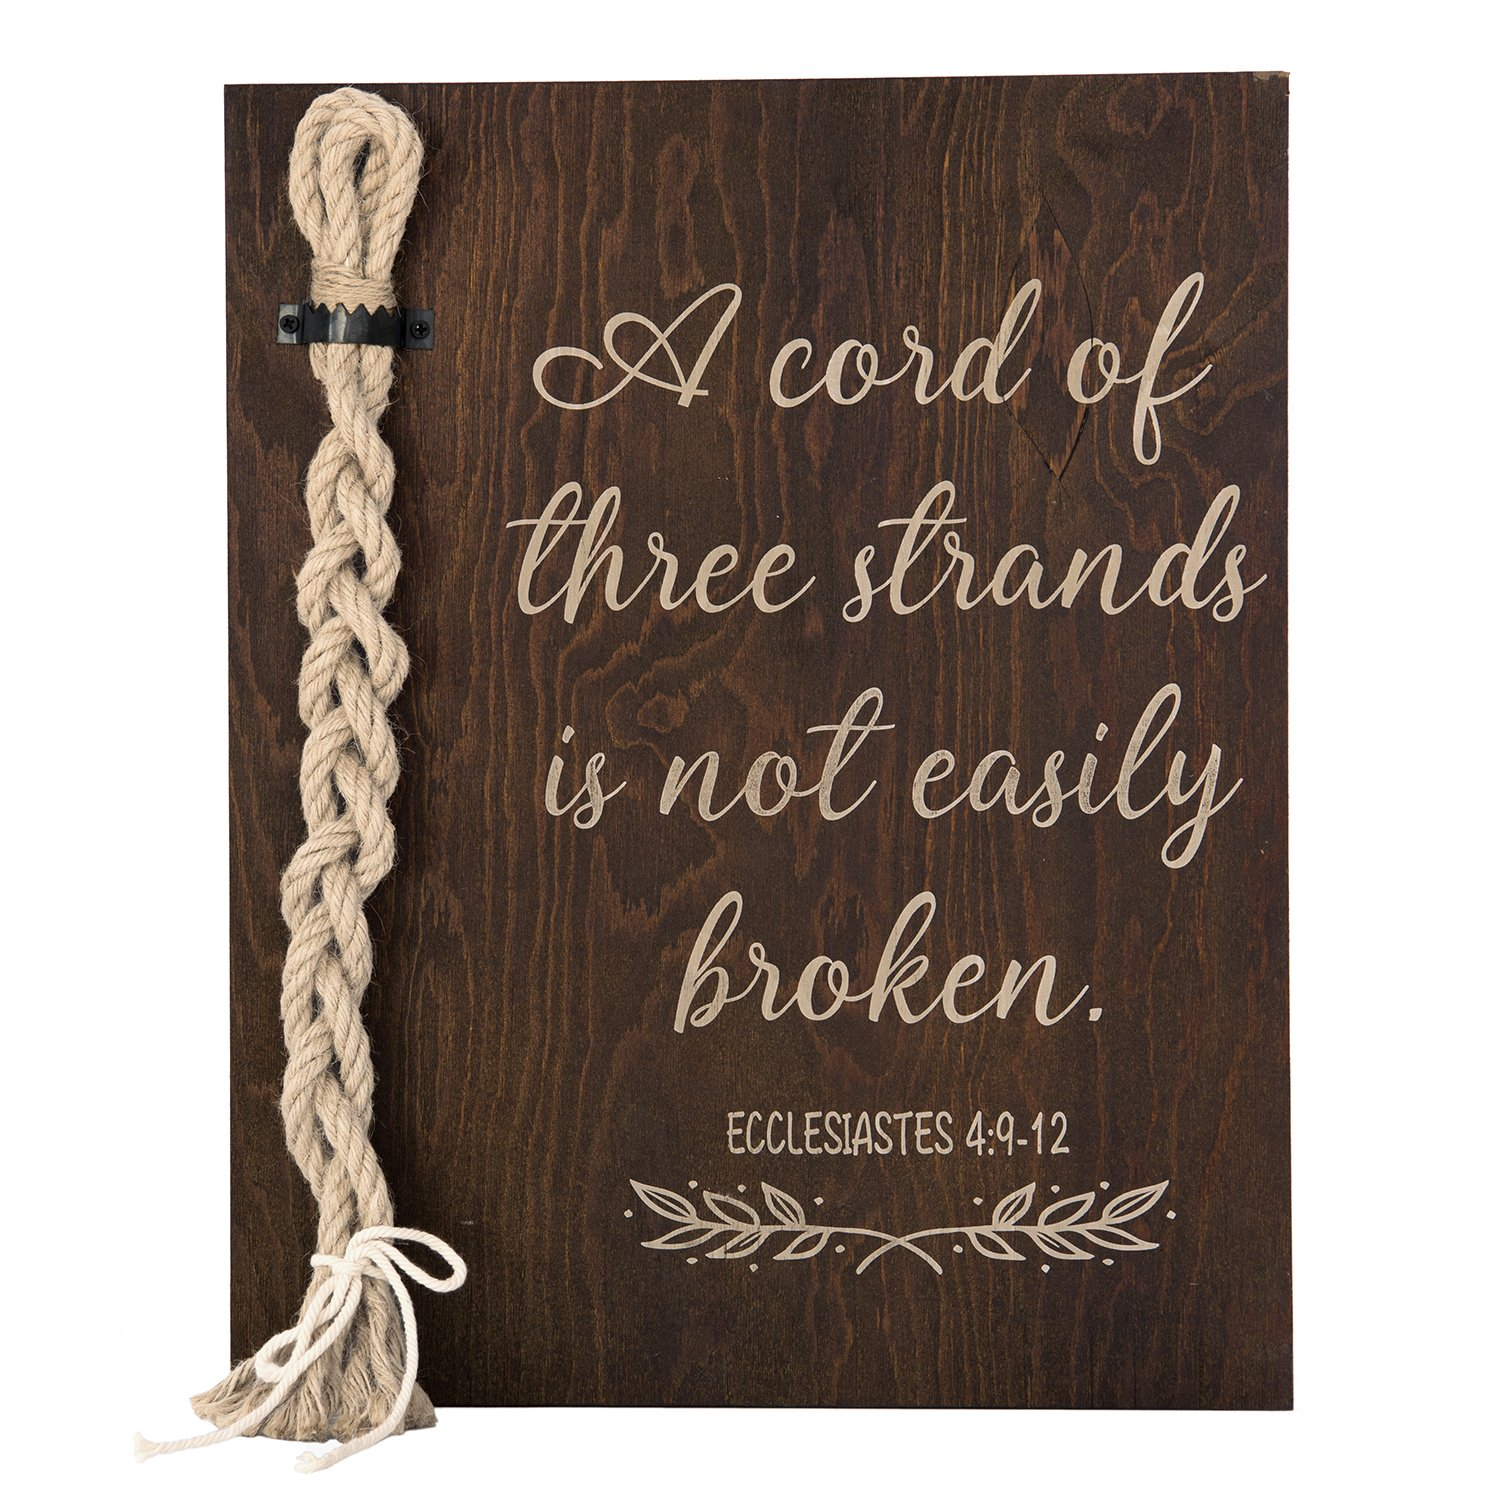 Ling's moment A Cord of Three Strands Wedding Sign-Alternative Wedding Unity Sign -Tie The Knot Ceremony-Strand of Three Cords Sign-Unity Cord Wedding Sign by Ling's moment